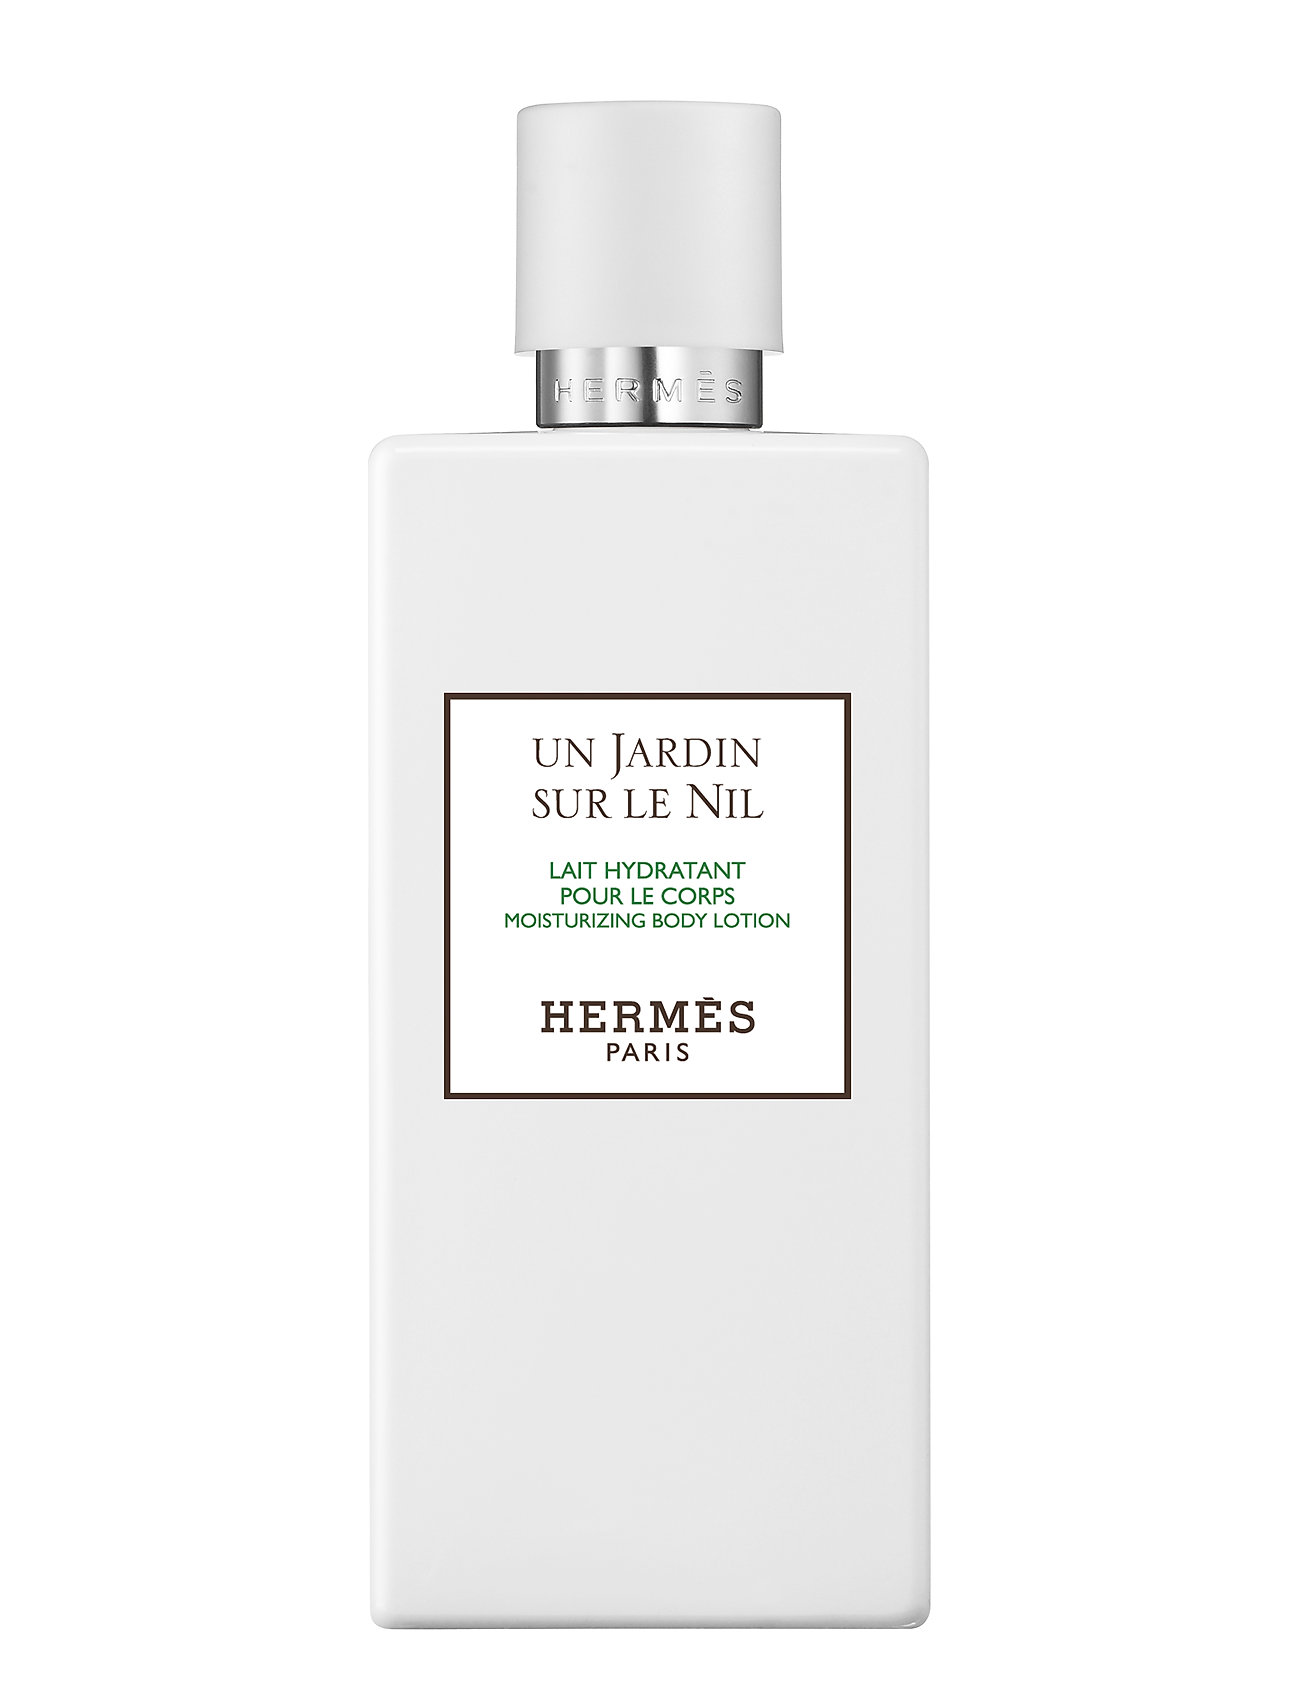 Image of Un Jardin Sur Le Nil, Perfumed Body Lotion Body Lotion Hudcreme Nude HERMÈS (3101135883)